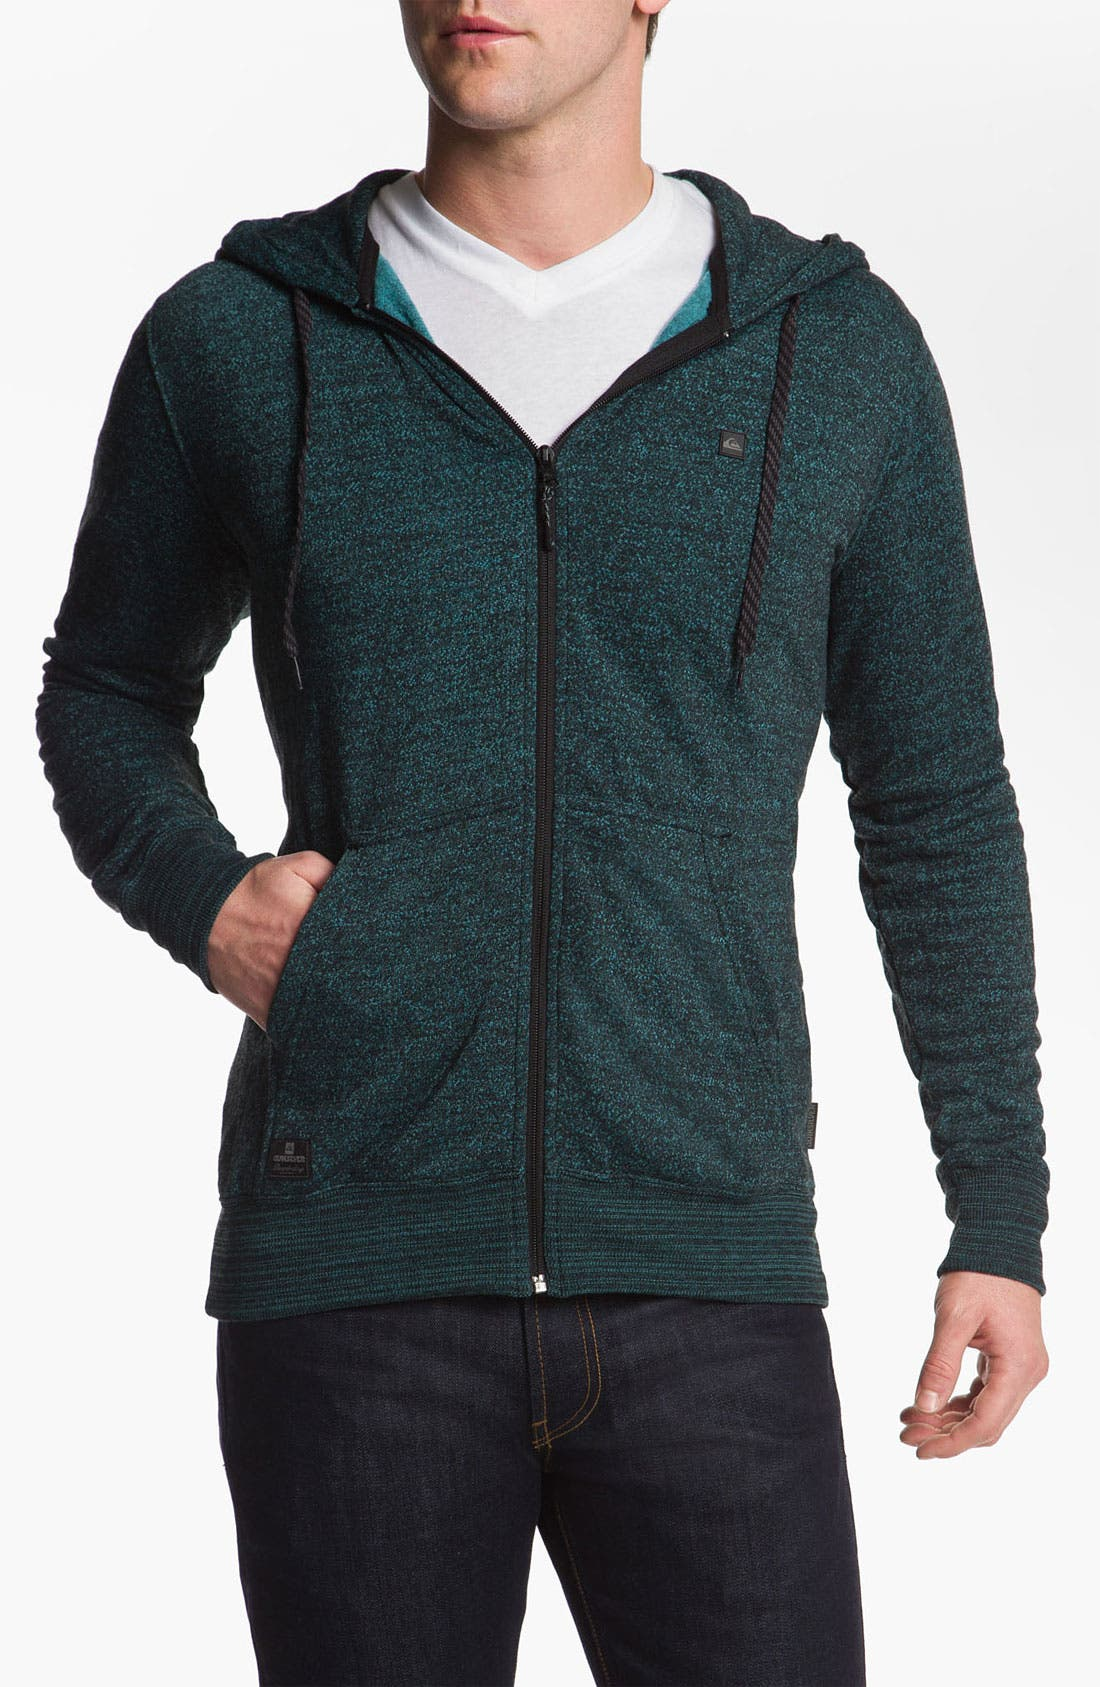 Alternate Image 1 Selected - Quiksilver 'Hydro' Zip Hoodie